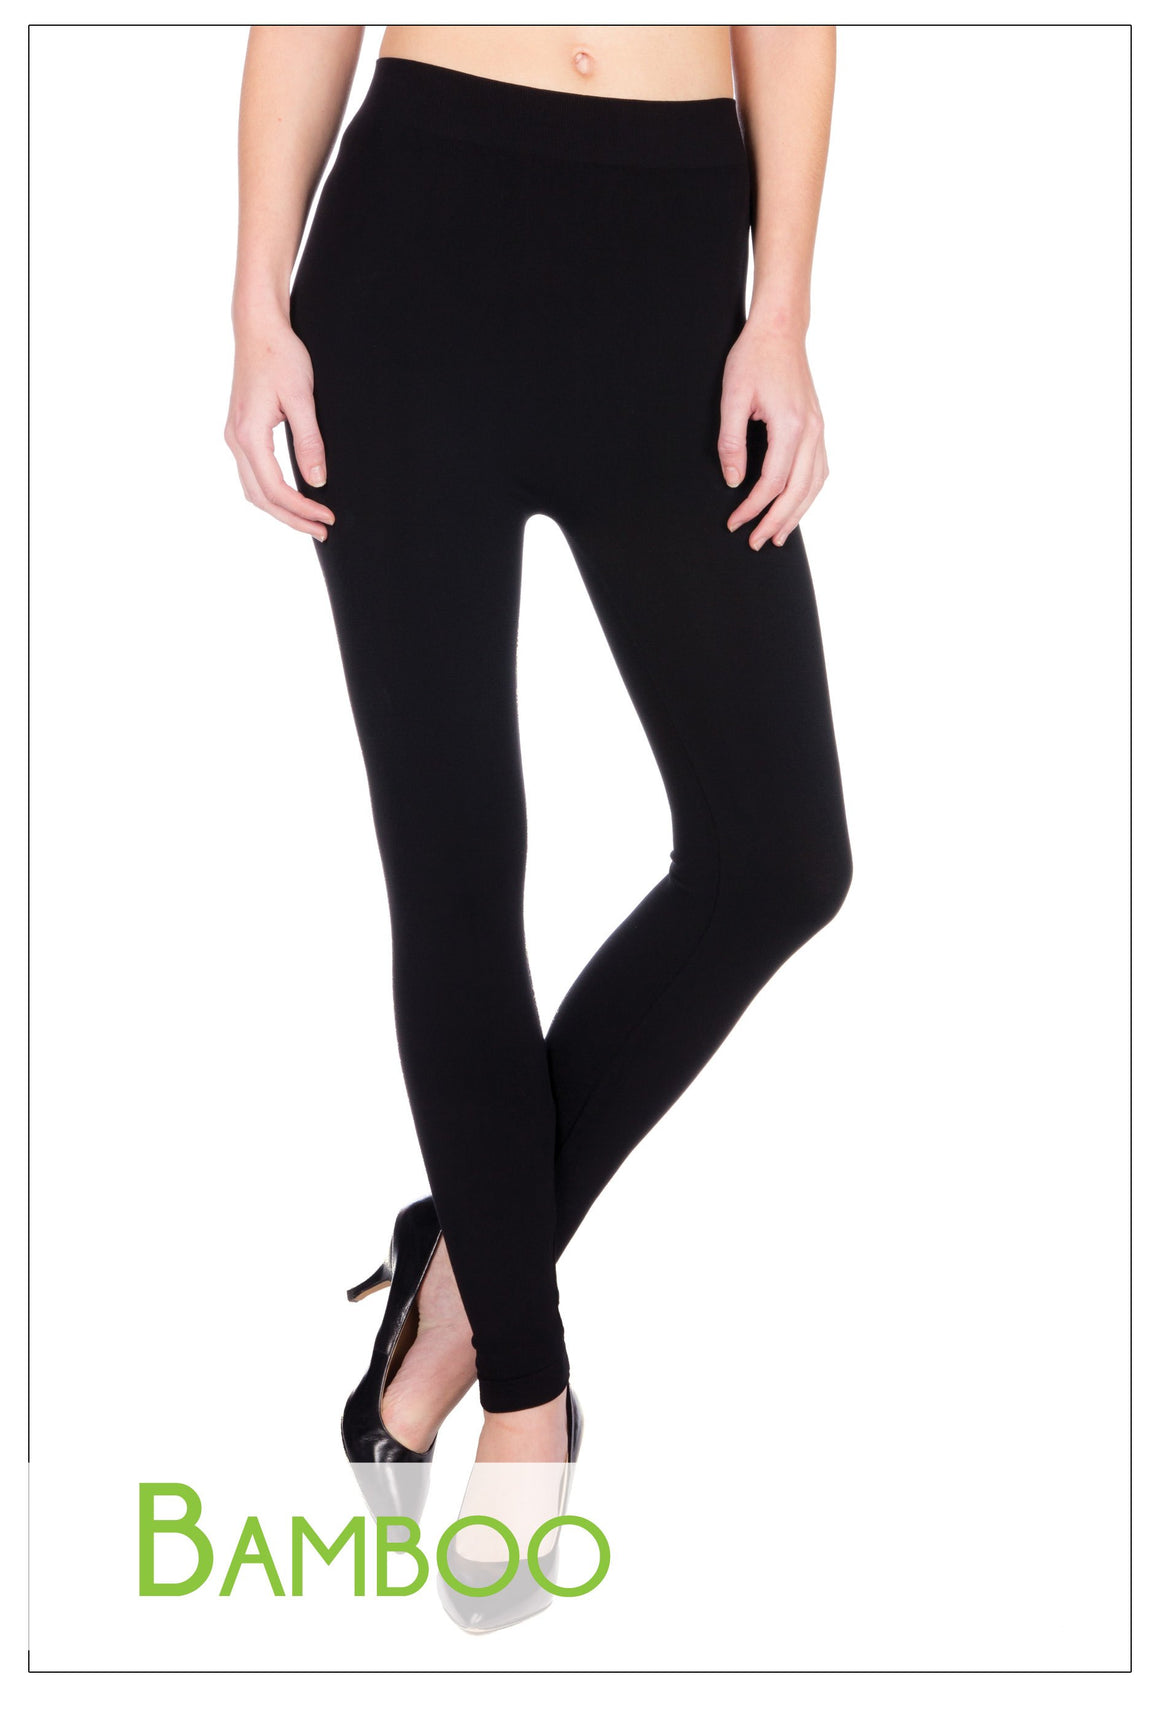 Bamboo basic one size full length leggings